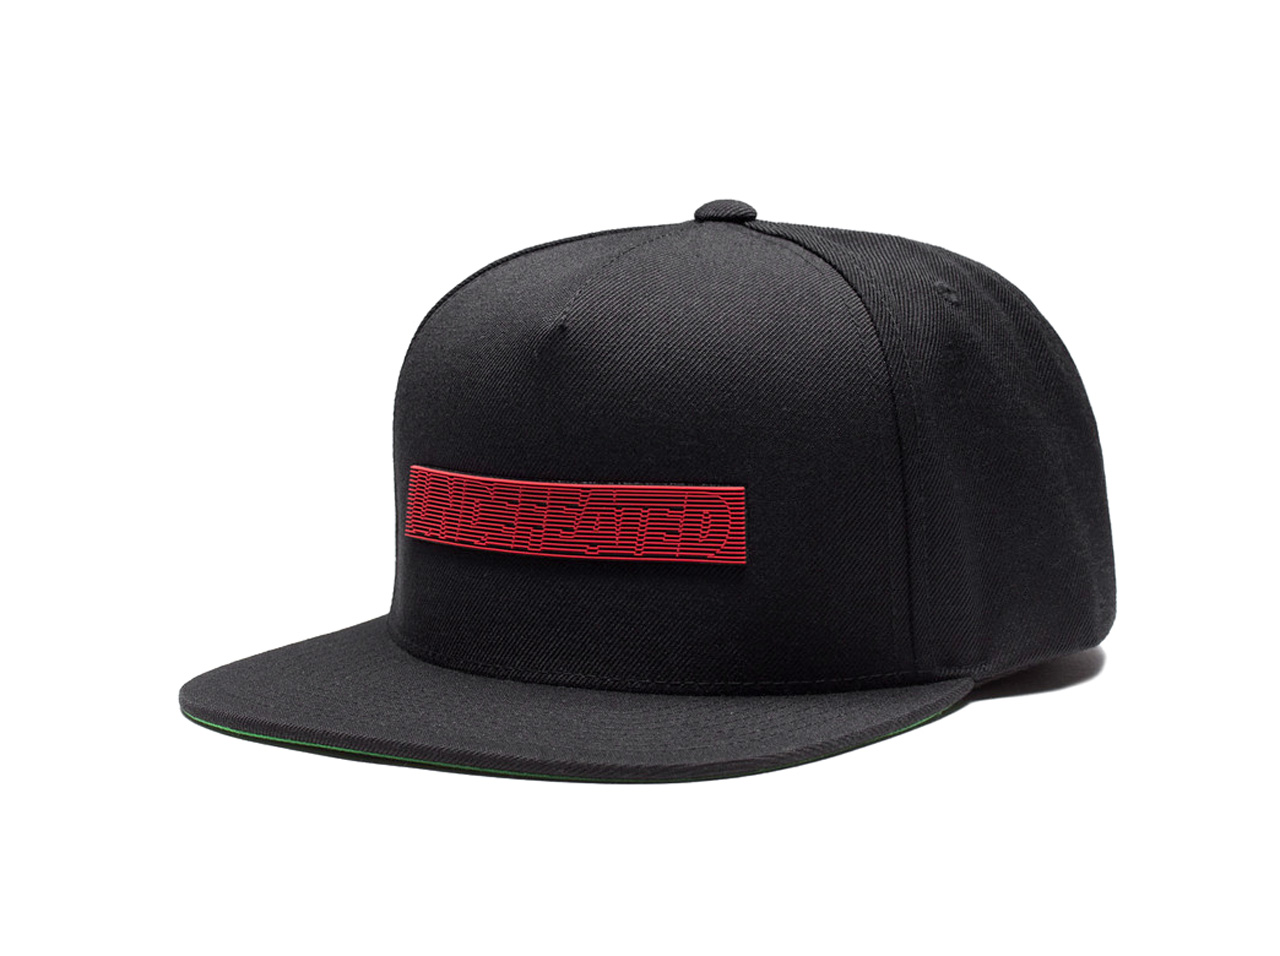 UNDEFEATED MATRIX CAP (531232)